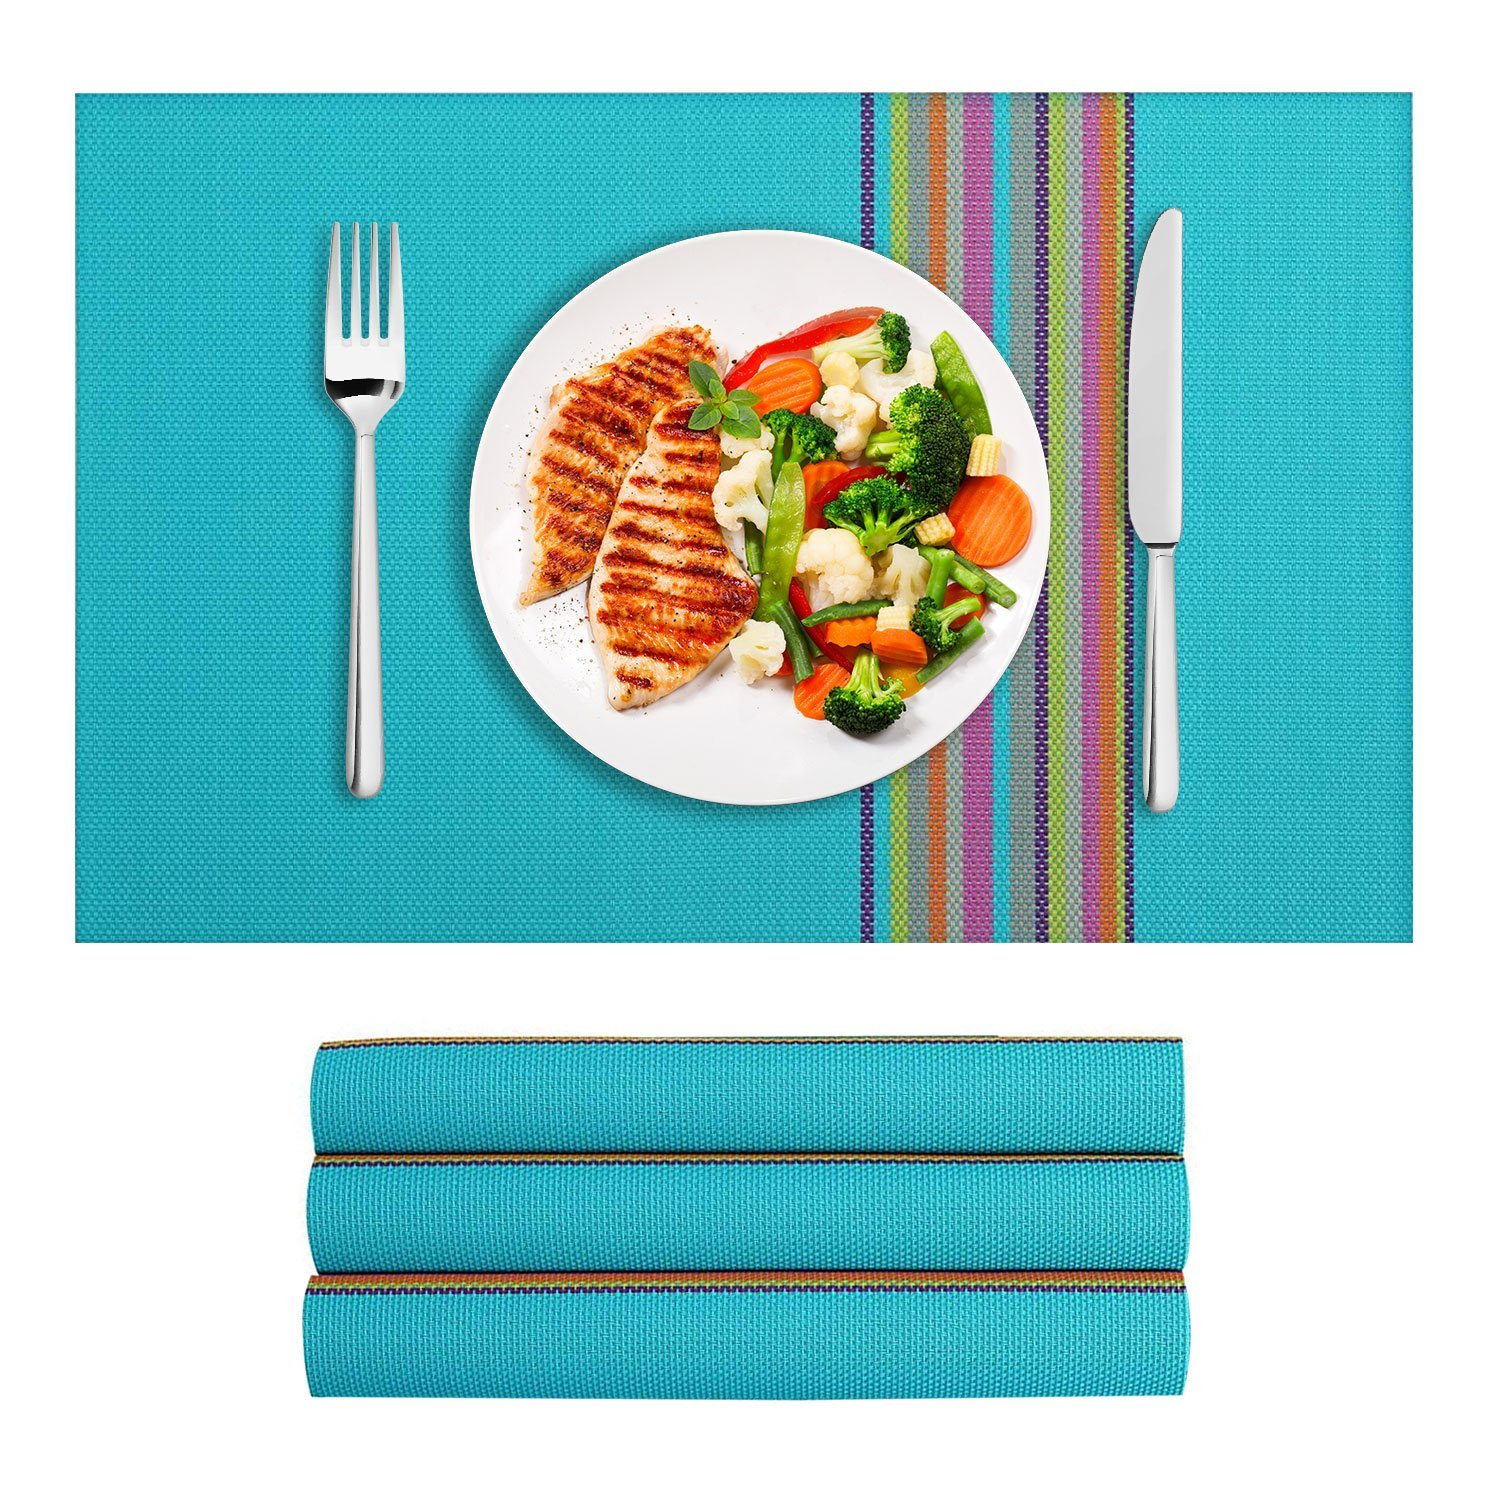 VEEYOO Place Mats Colorful Stripes Woven Vinyl Insulation Stain Resistant Washable Table Placemats Kitchen Dining Table Meal Mat, Set of 4, Turquoise